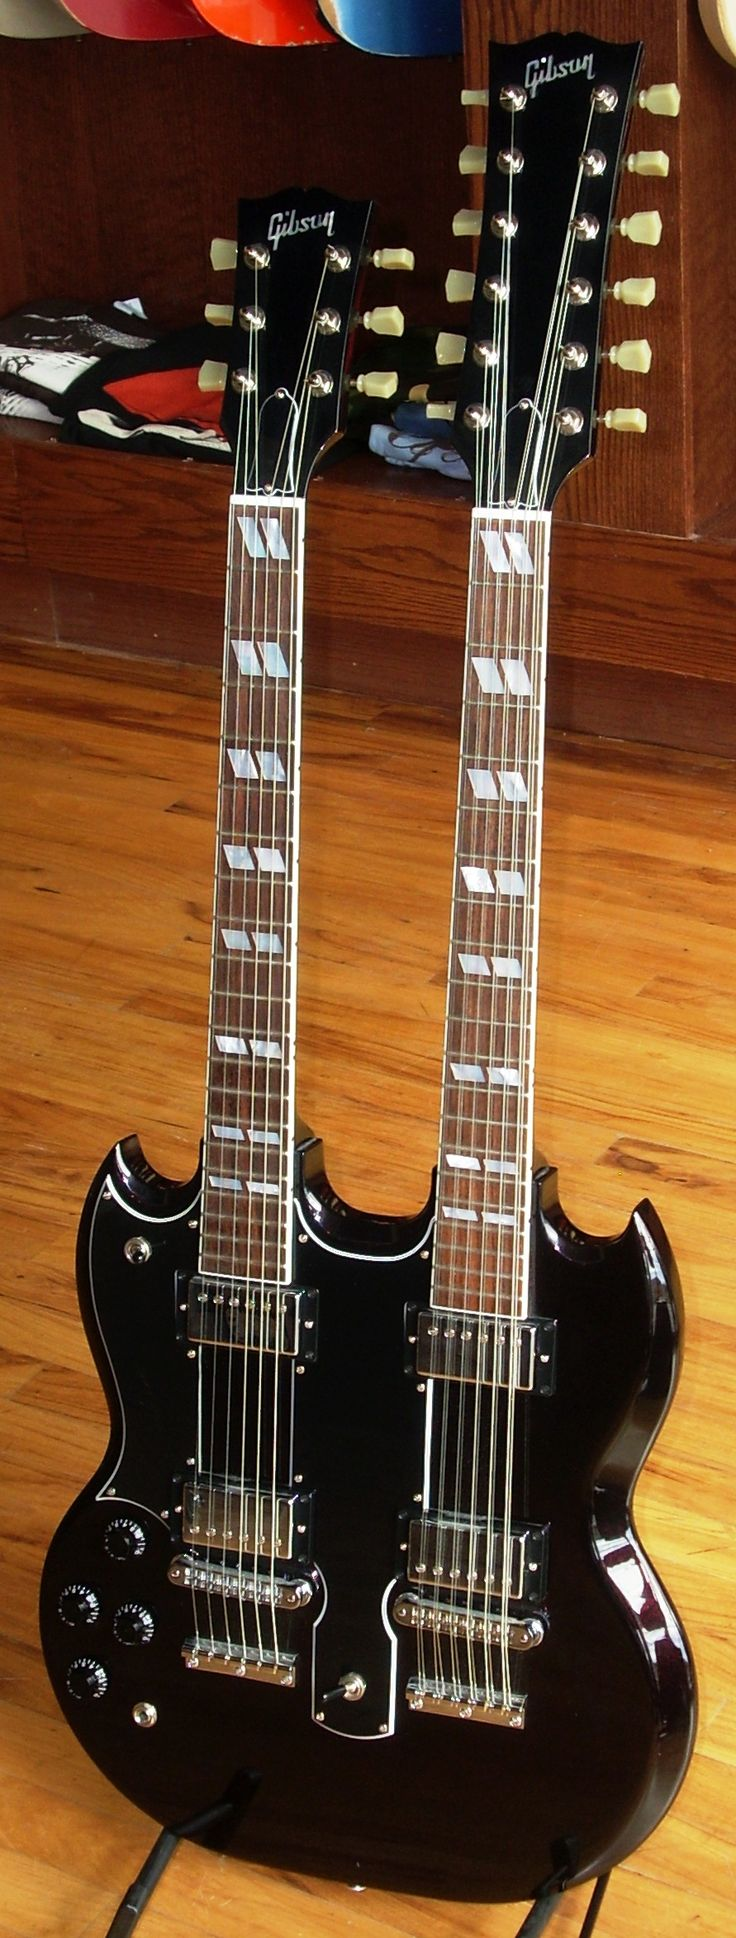 Gibson sg wiring diagram 4k e ton cdi wiring diagram flamethrower interesting p90 electric guitar wiring diagrams photos best f62d55b2a91cdbd3bc71f8598530b940 gibson sg gibson guitars p90 electric guitar asfbconference2016 Image collections